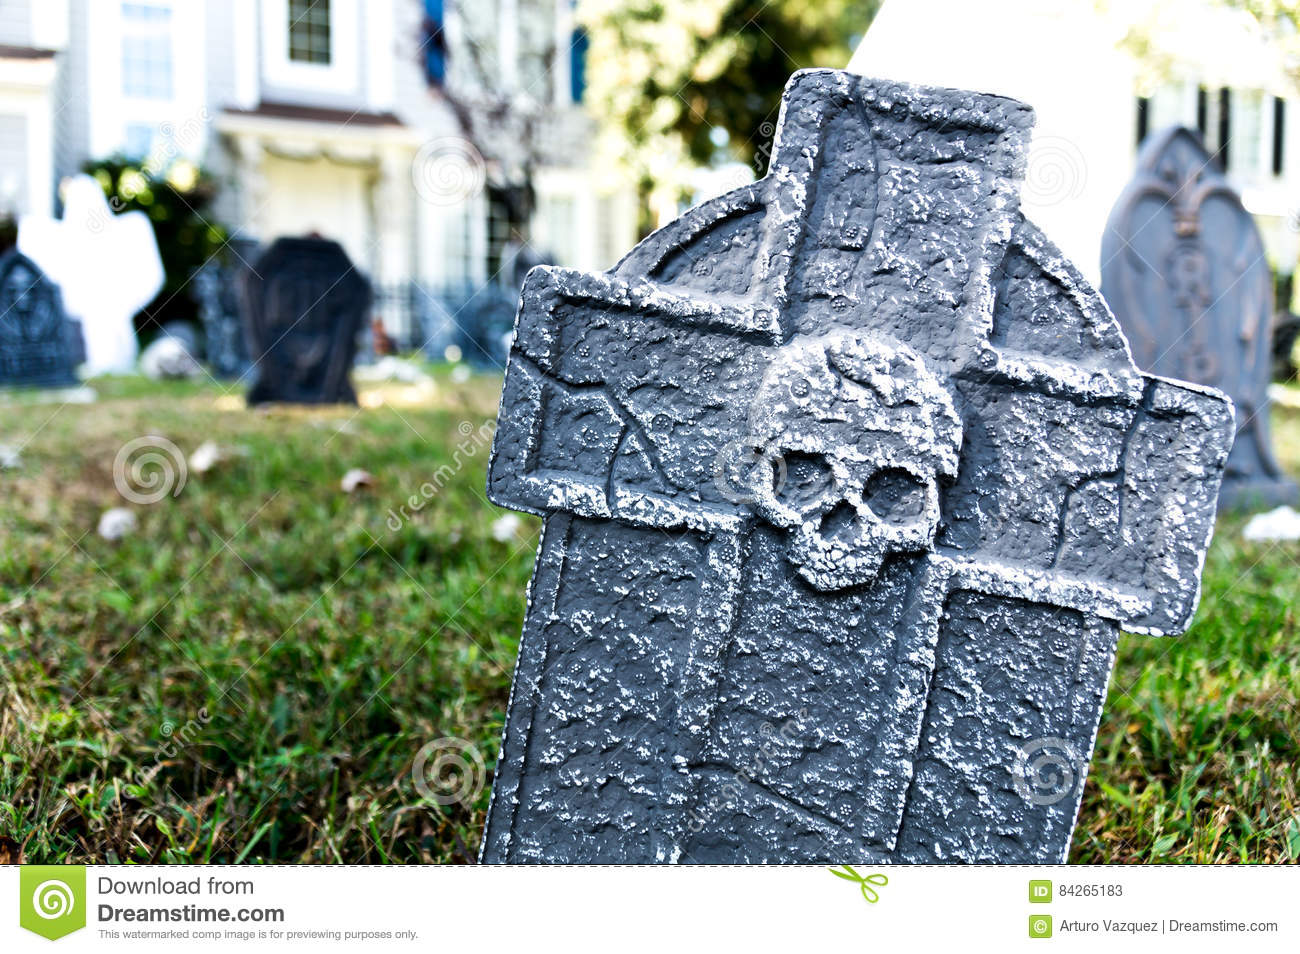 tombstone halloween yard decoration stock image - image of funeral